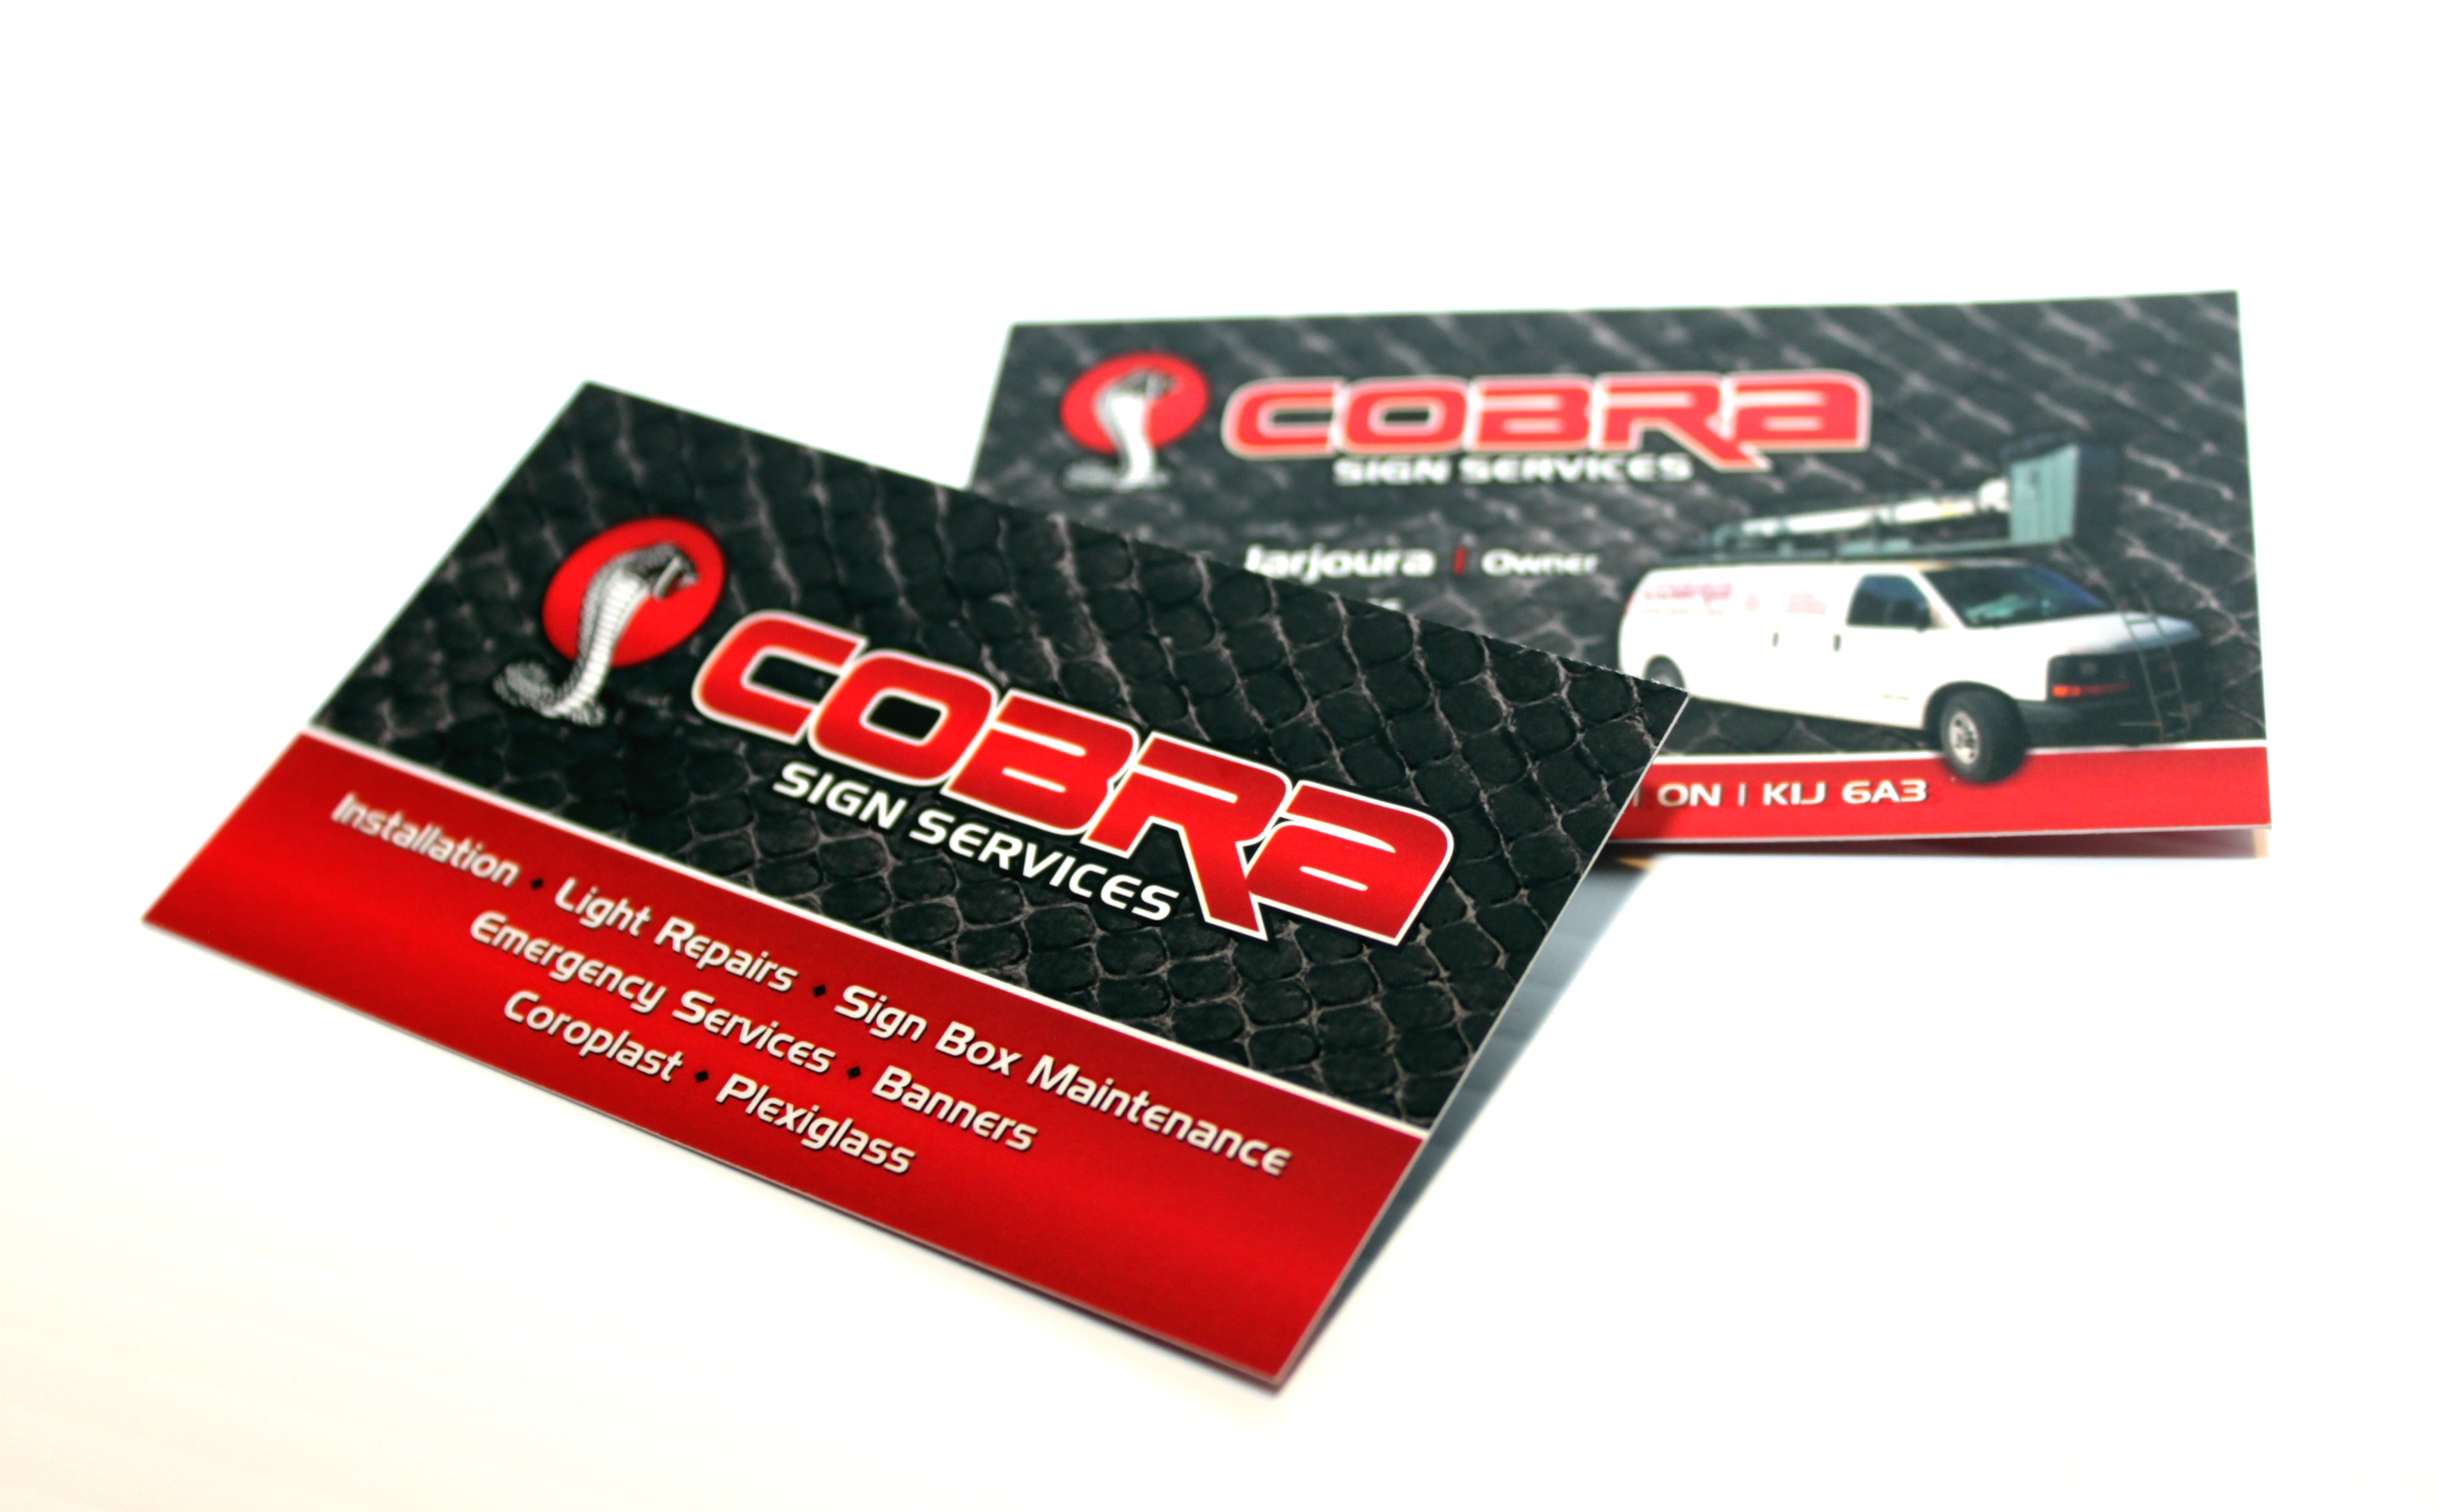 Cobra Sign Services